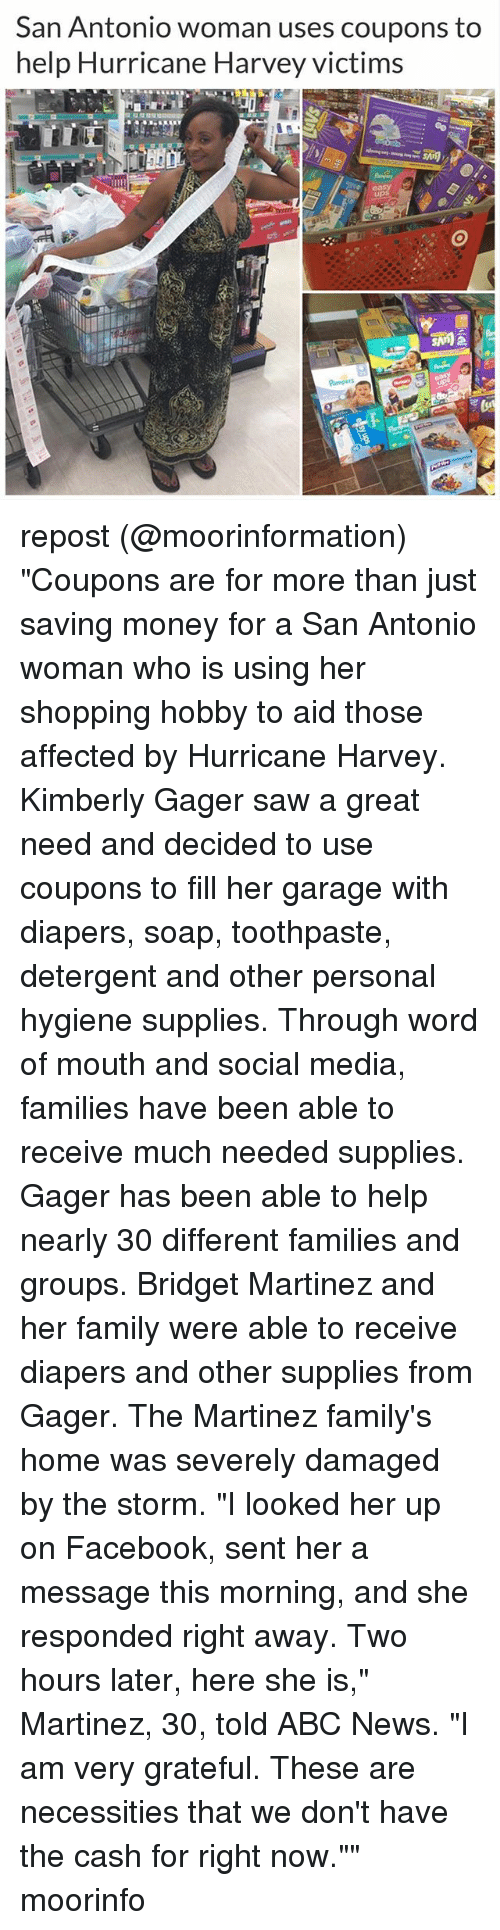 """Senting: San Antonio woman uses coupons to  help Hurricane Harvey victims repost (@moorinformation) """"Coupons are for more than just saving money for a San Antonio woman who is using her shopping hobby to aid those affected by Hurricane Harvey. Kimberly Gager saw a great need and decided to use coupons to fill her garage with diapers, soap, toothpaste, detergent and other personal hygiene supplies. Through word of mouth and social media, families have been able to receive much needed supplies. Gager has been able to help nearly 30 different families and groups. Bridget Martinez and her family were able to receive diapers and other supplies from Gager. The Martinez family's home was severely damaged by the storm. """"I looked her up on Facebook, sent her a message this morning, and she responded right away. Two hours later, here she is,"""" Martinez, 30, told ABC News. """"I am very grateful. These are necessities that we don't have the cash for right now."""""""" moorinfo"""